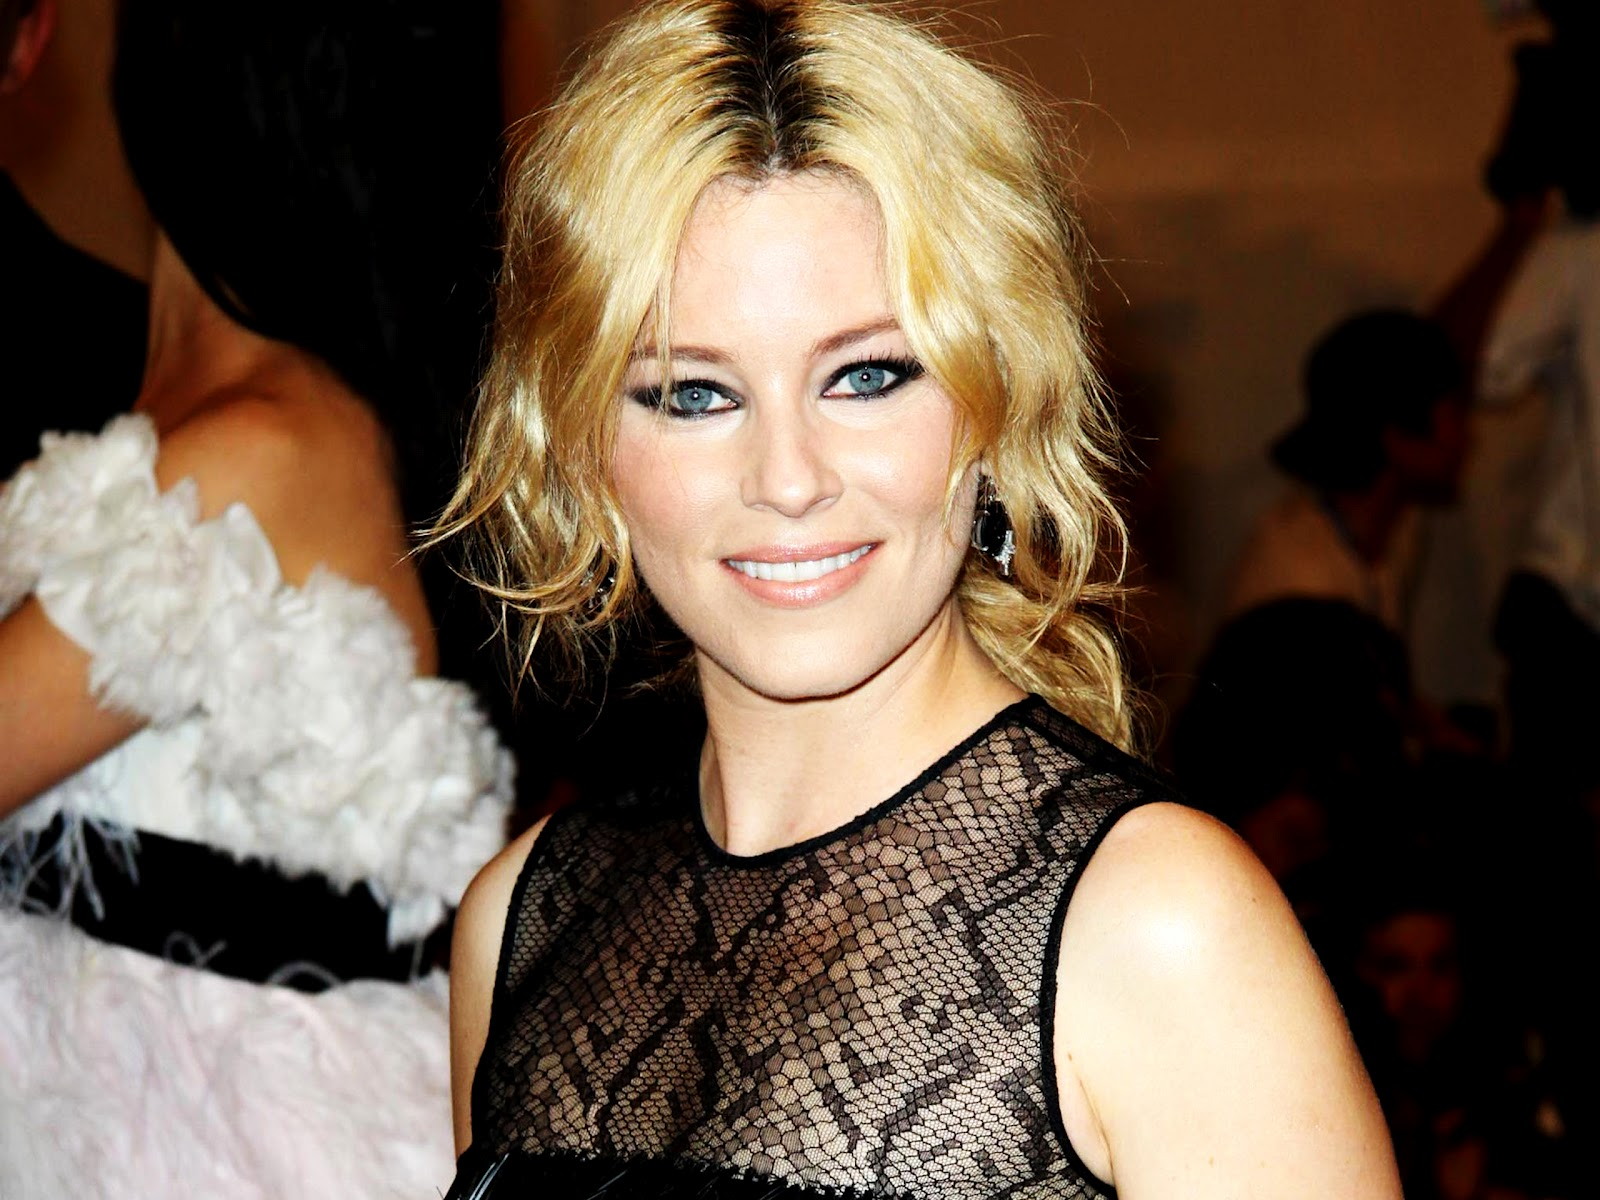 Elizabeth Banks Wallpapers, Pictures, Images